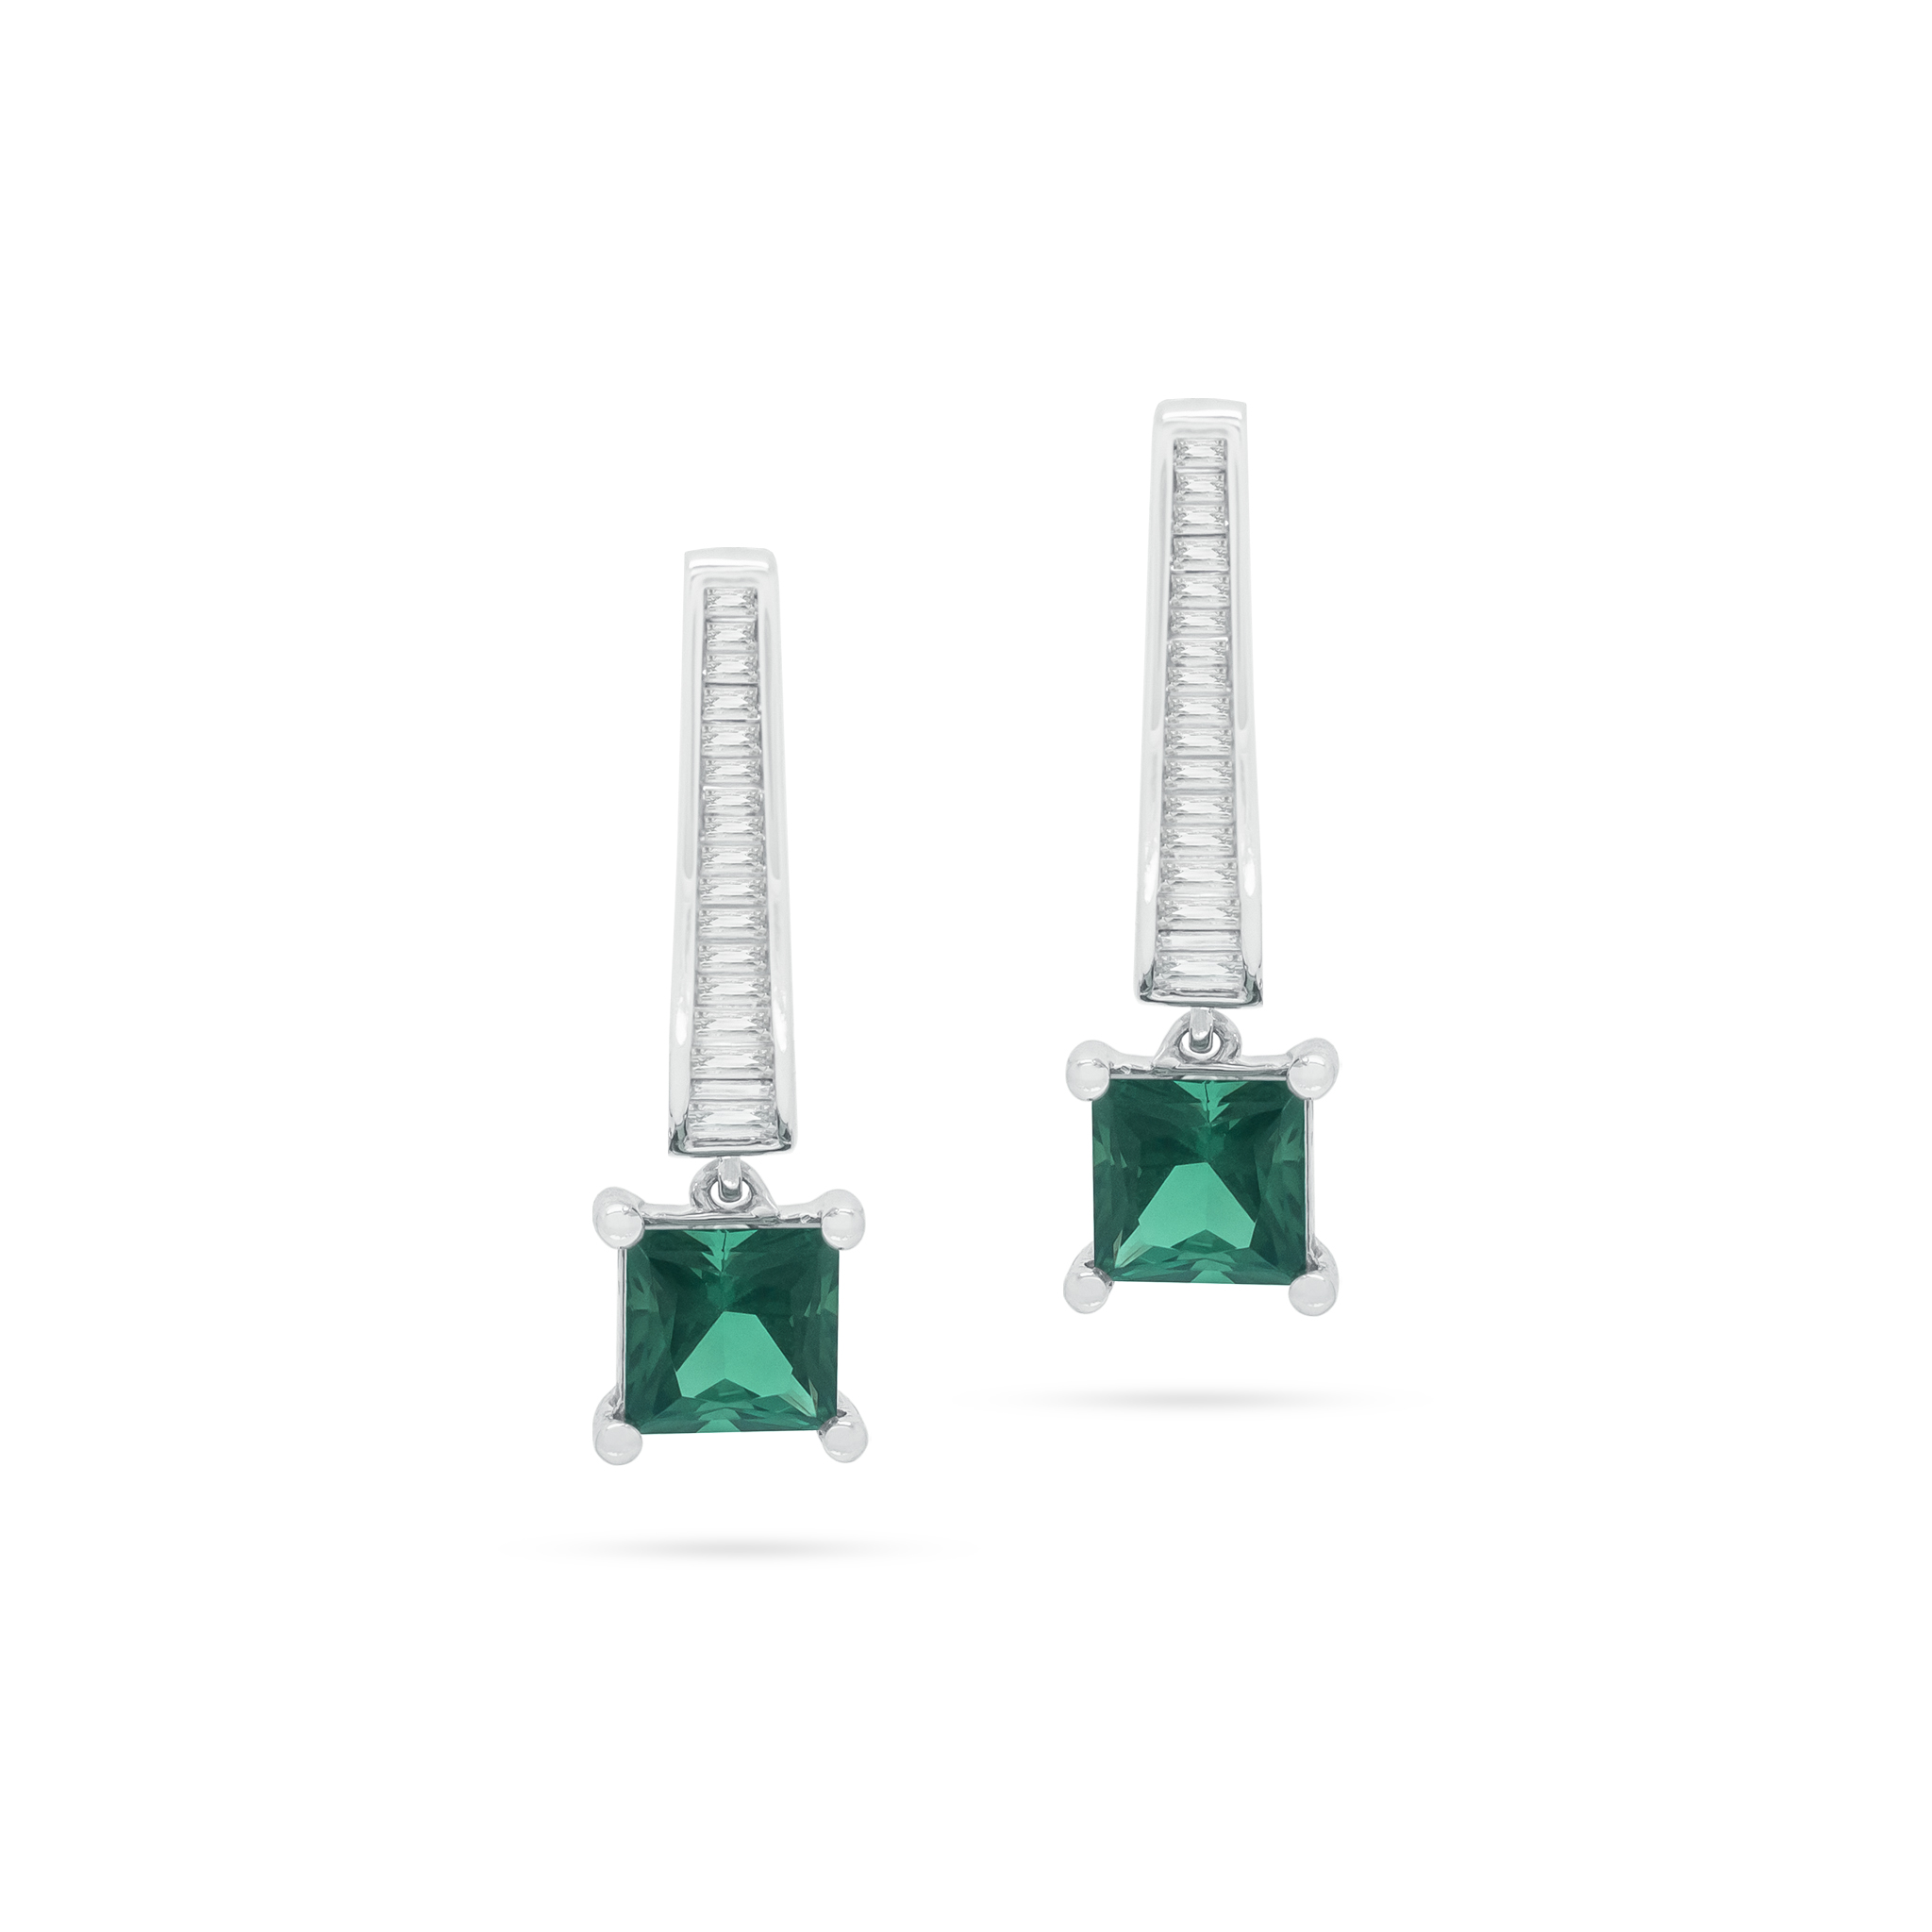 Blue-Green Tourmaline Earrings